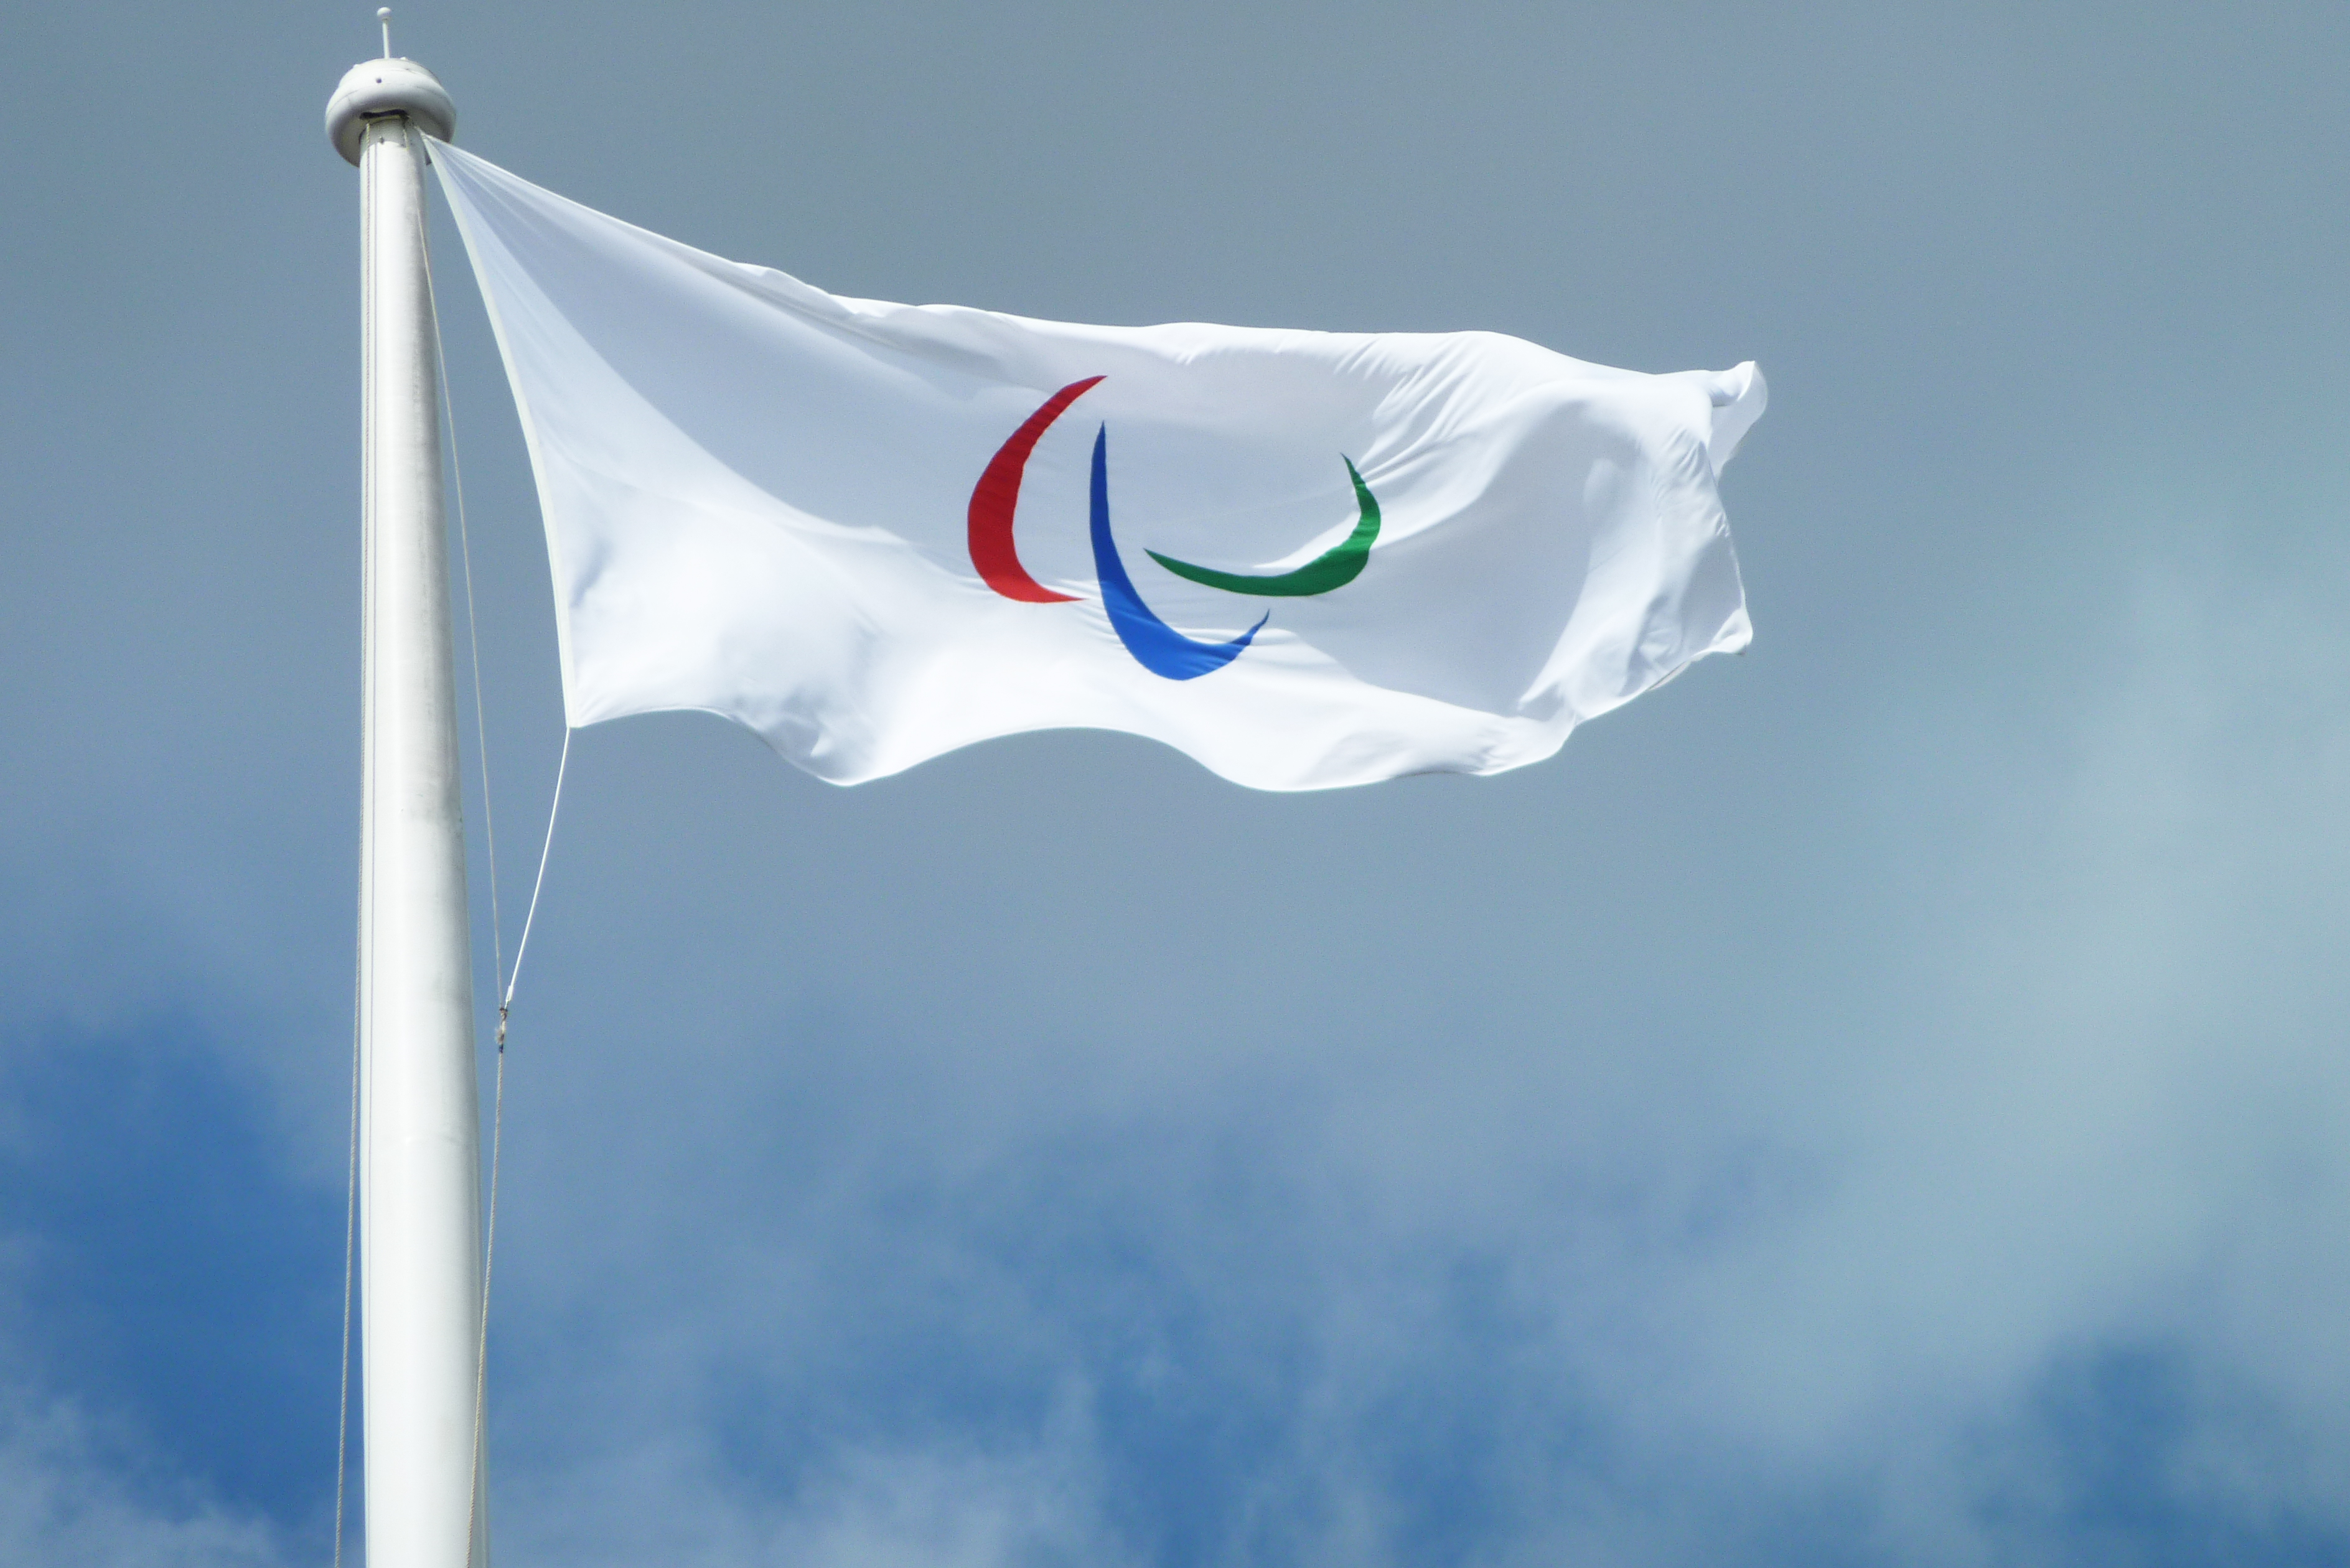 File:Paralympic Agitos Flag (7844521694).jpg - Wikimedia Commons